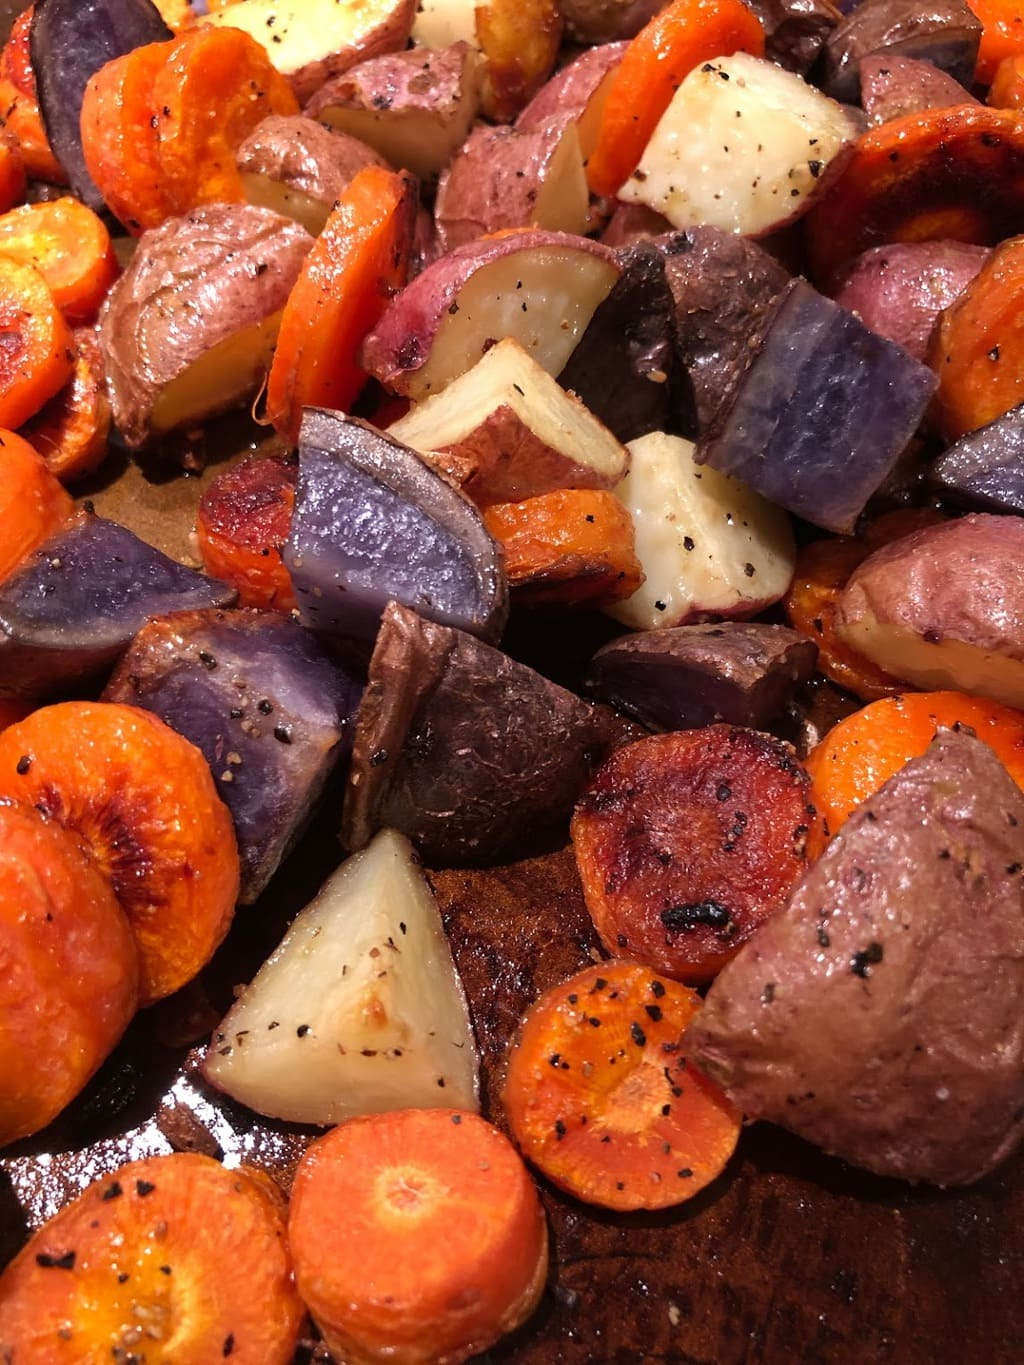 Garlic Roasted Potatoes and Carrots on a tray